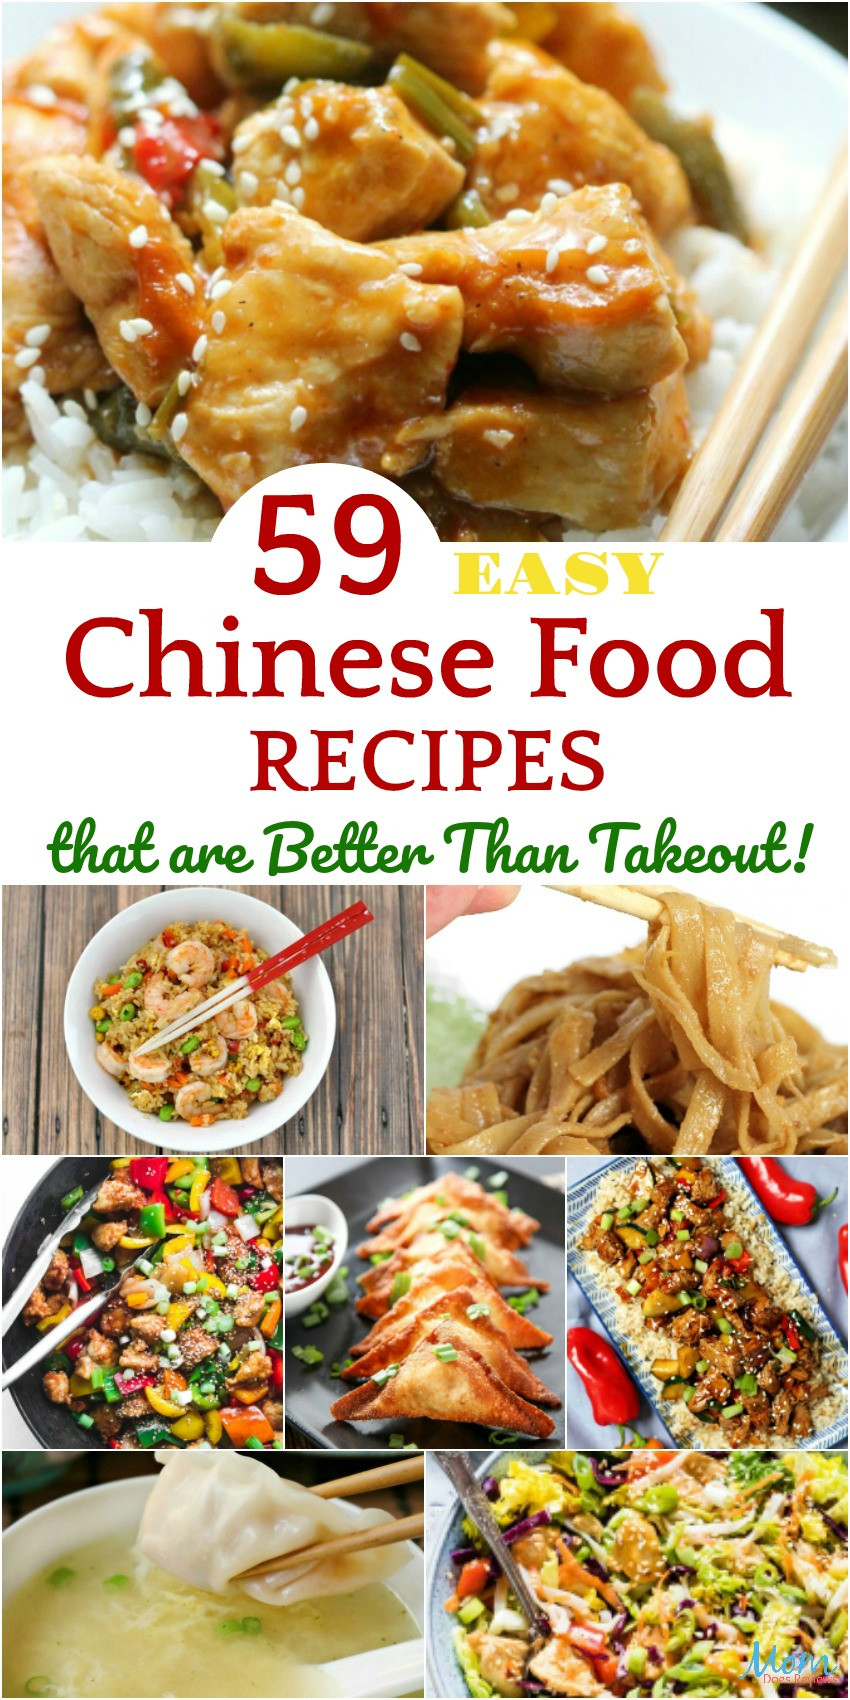 Chinese Foods Recipes With Pictures  59 Easy Chinese Food Recipes that are Better Than Takeout